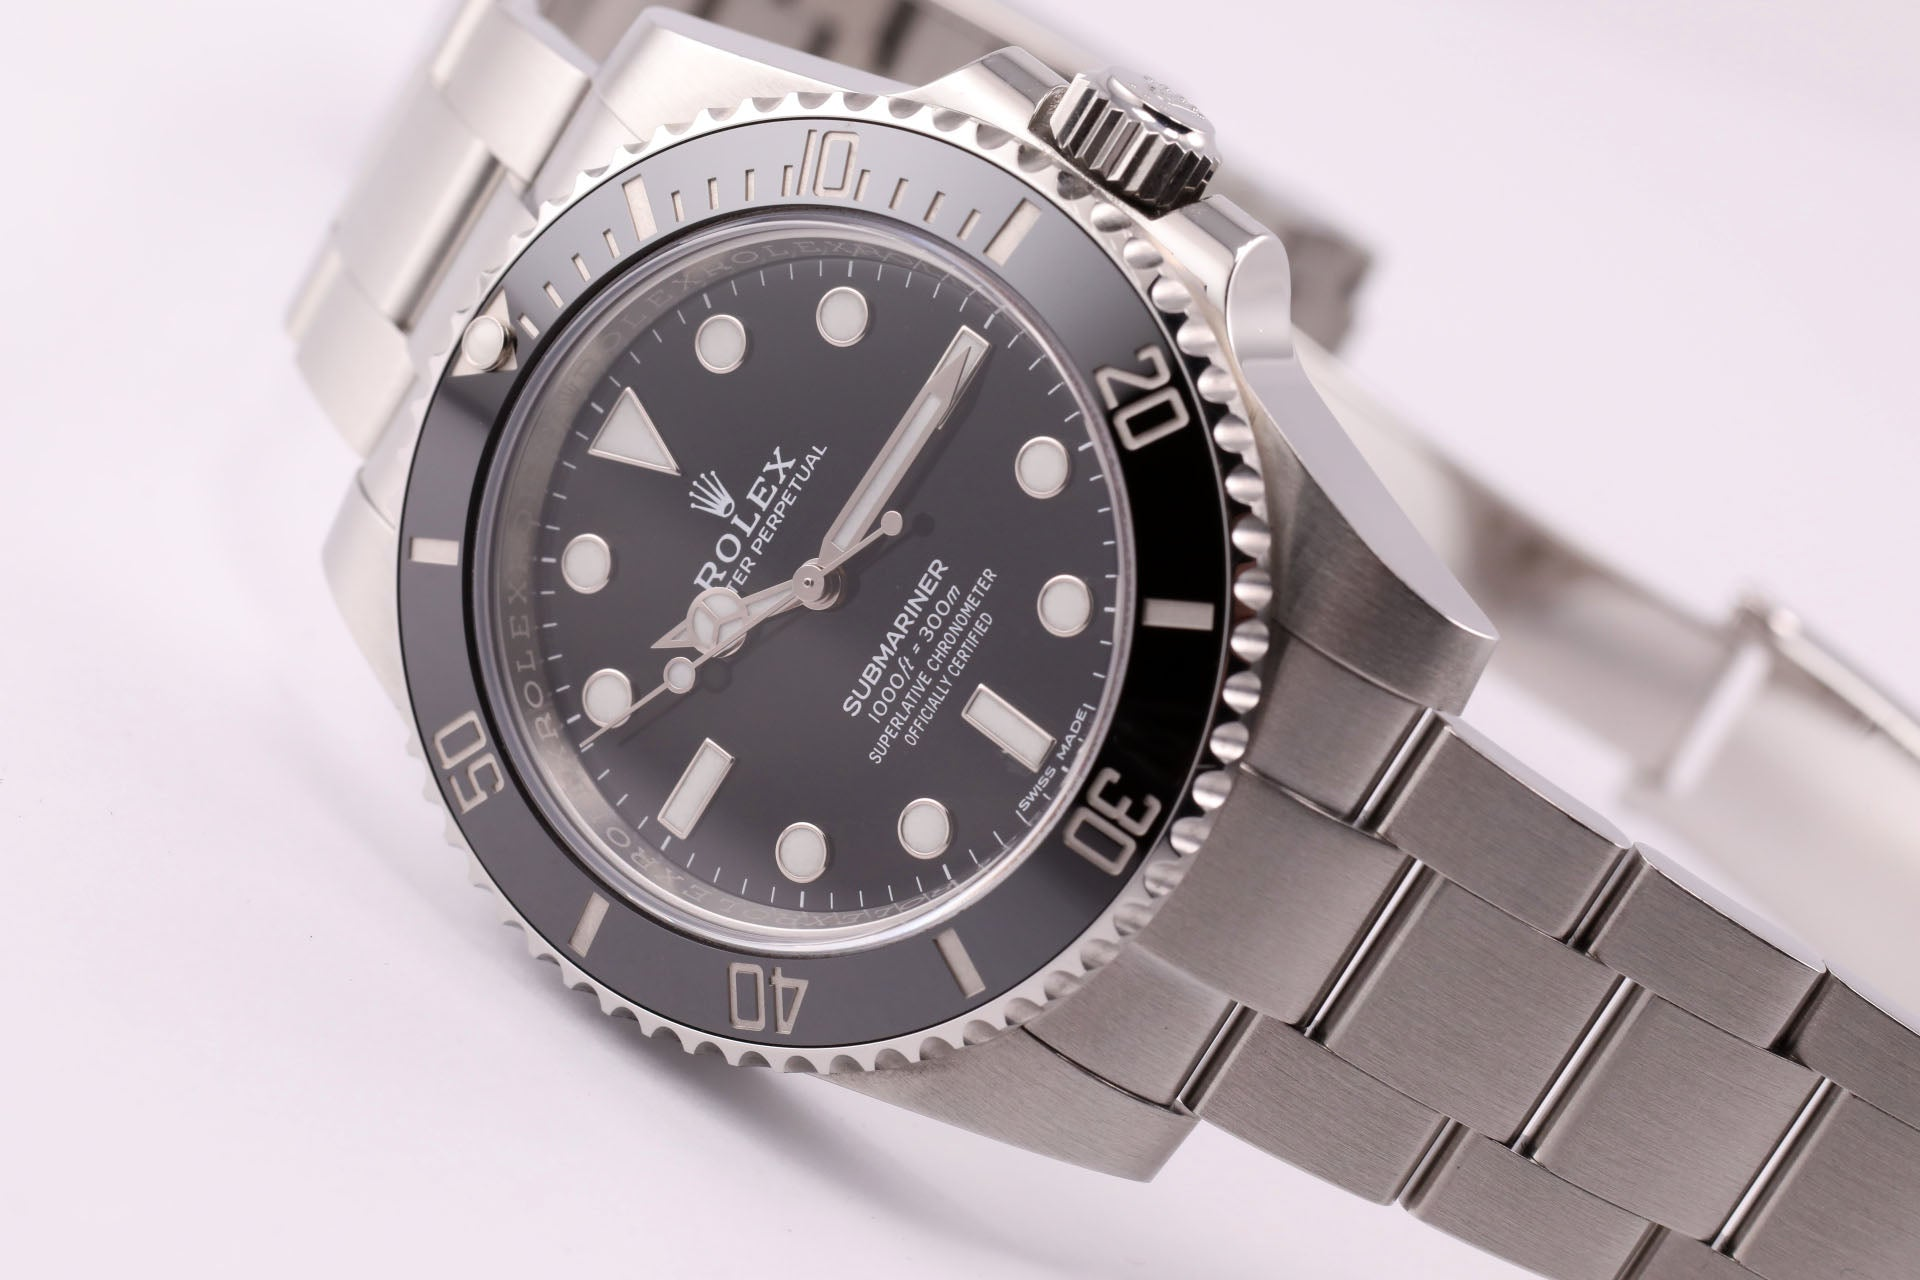 Rolex Submariner 114060 - The Iconic Submariner No Date